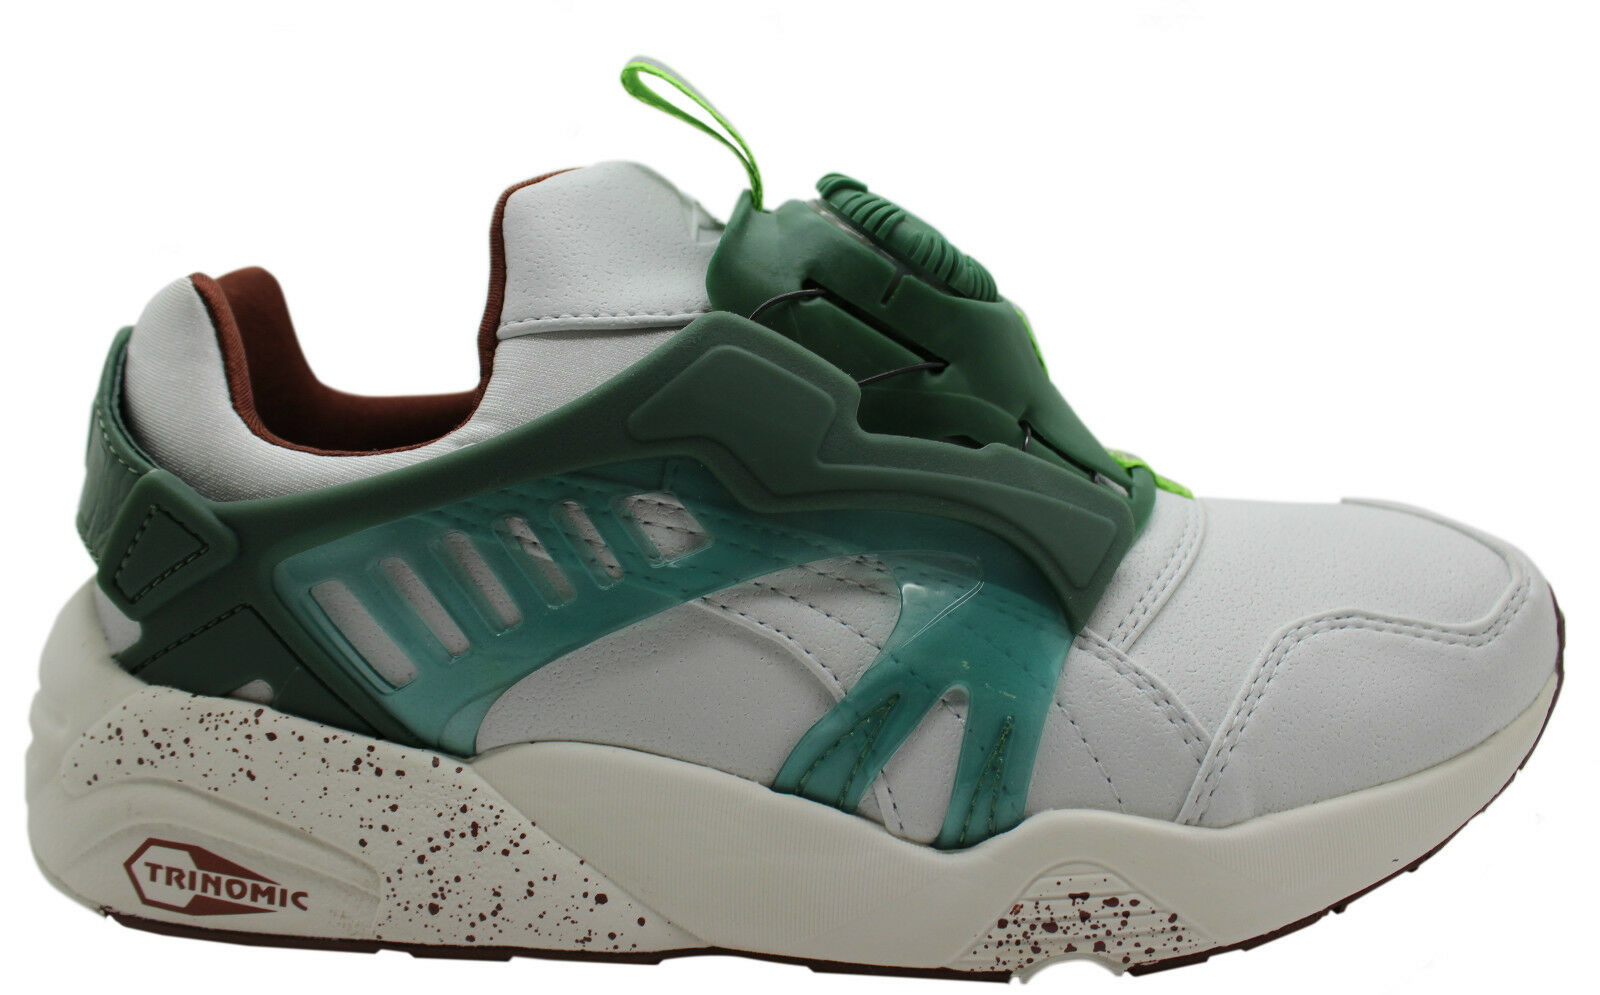 Puma Trinomic Disc Wildernerss Pack  Herren Trainers 357475 Weiß 357475 Trainers 01 D44 bae1e3